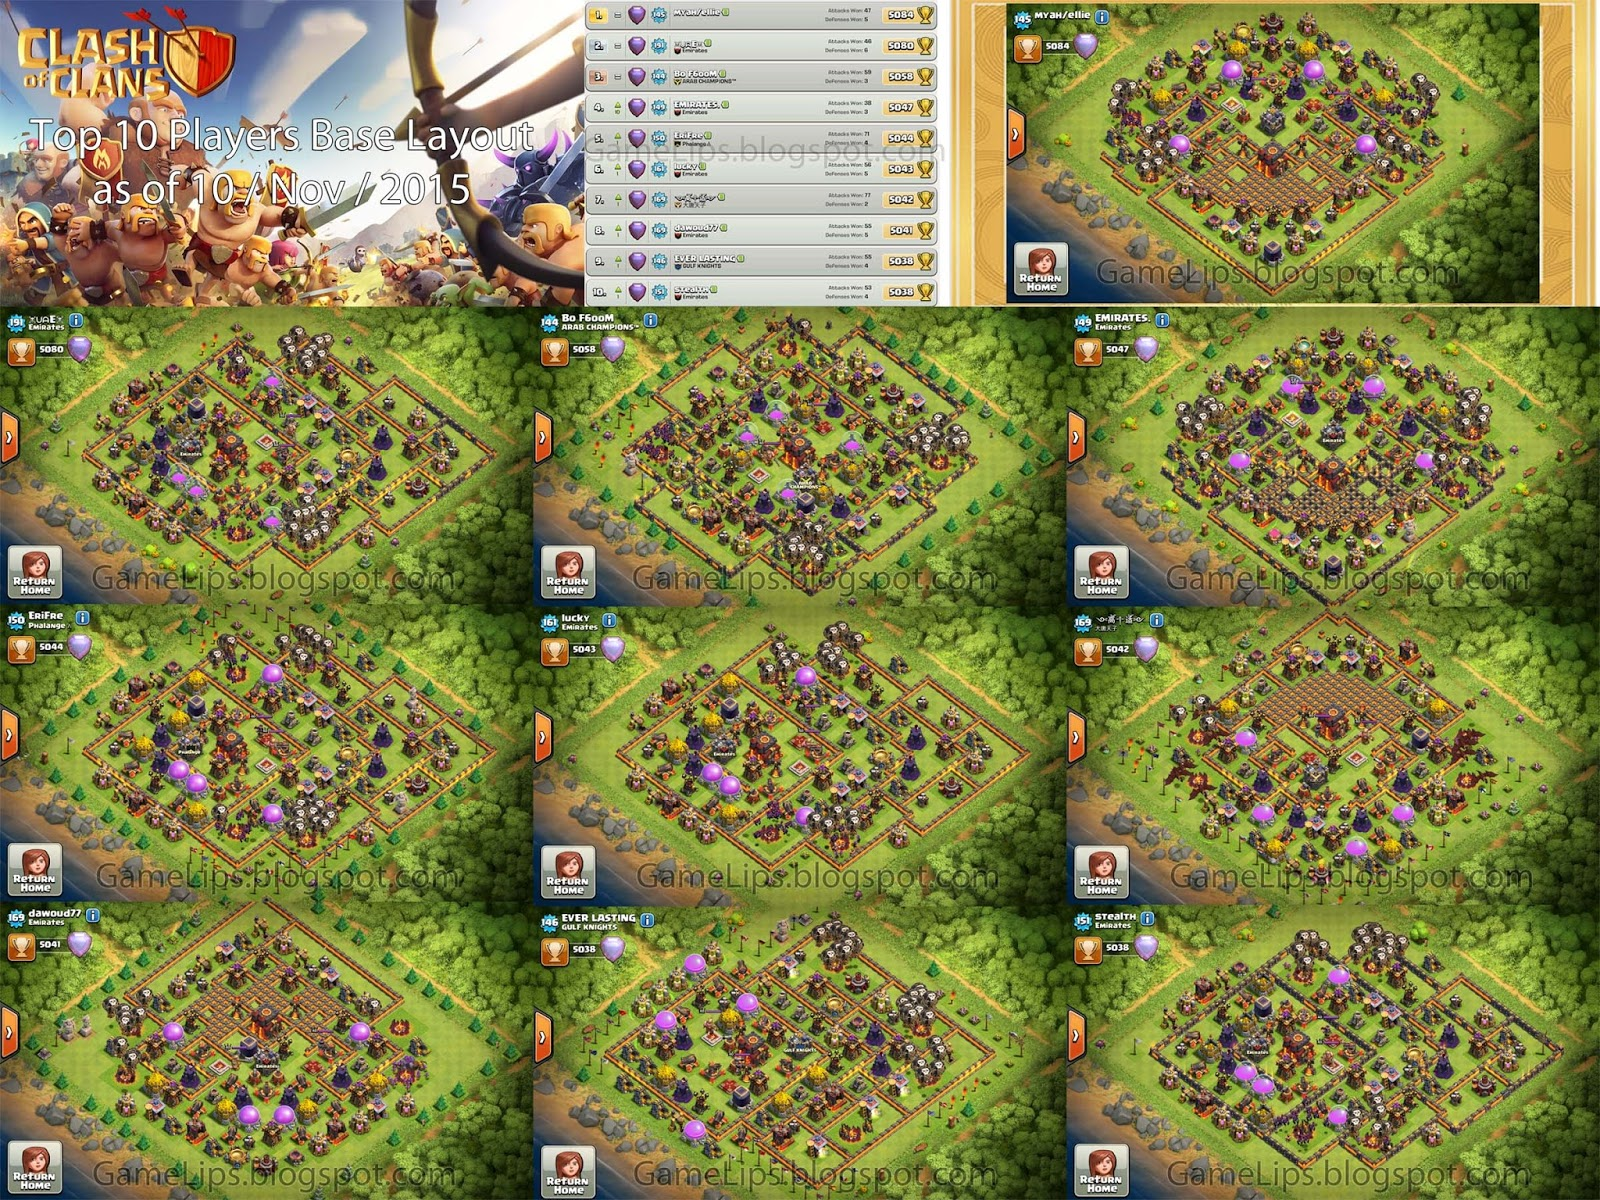 Clash of Clans - Top 10 Player Base Layout 2015 November